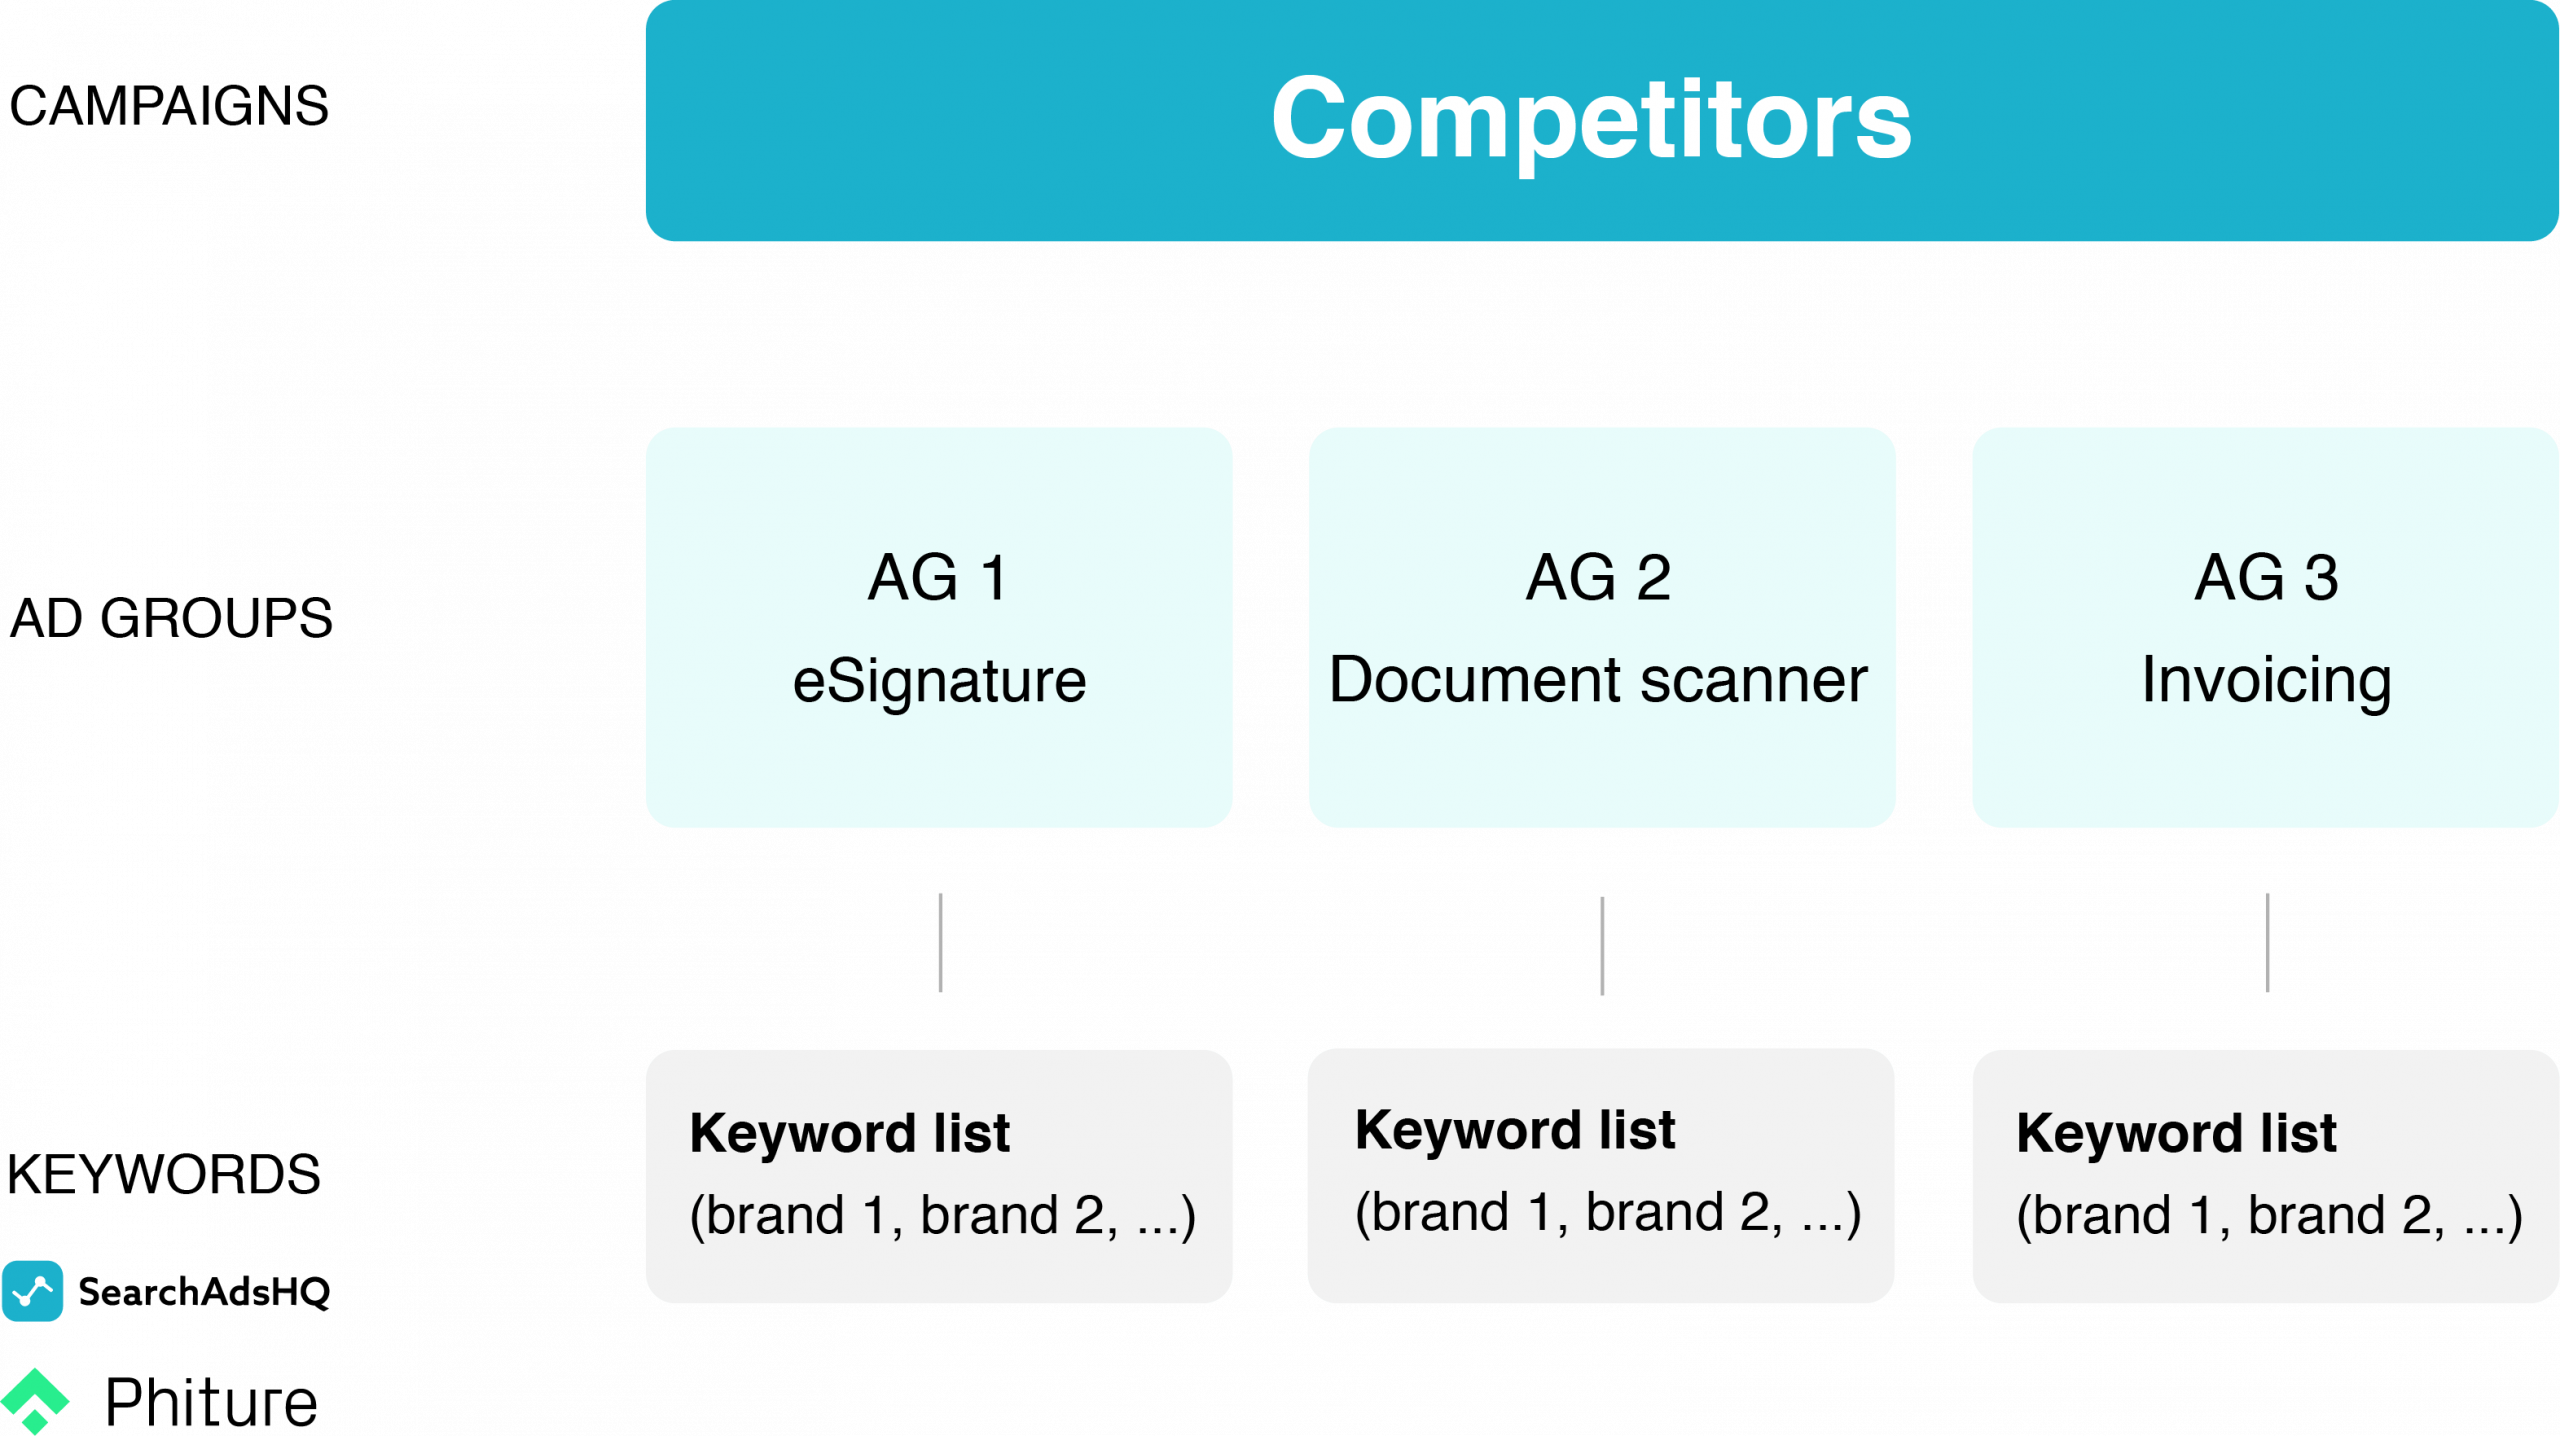 Apple Search Ads account structure - Competitors